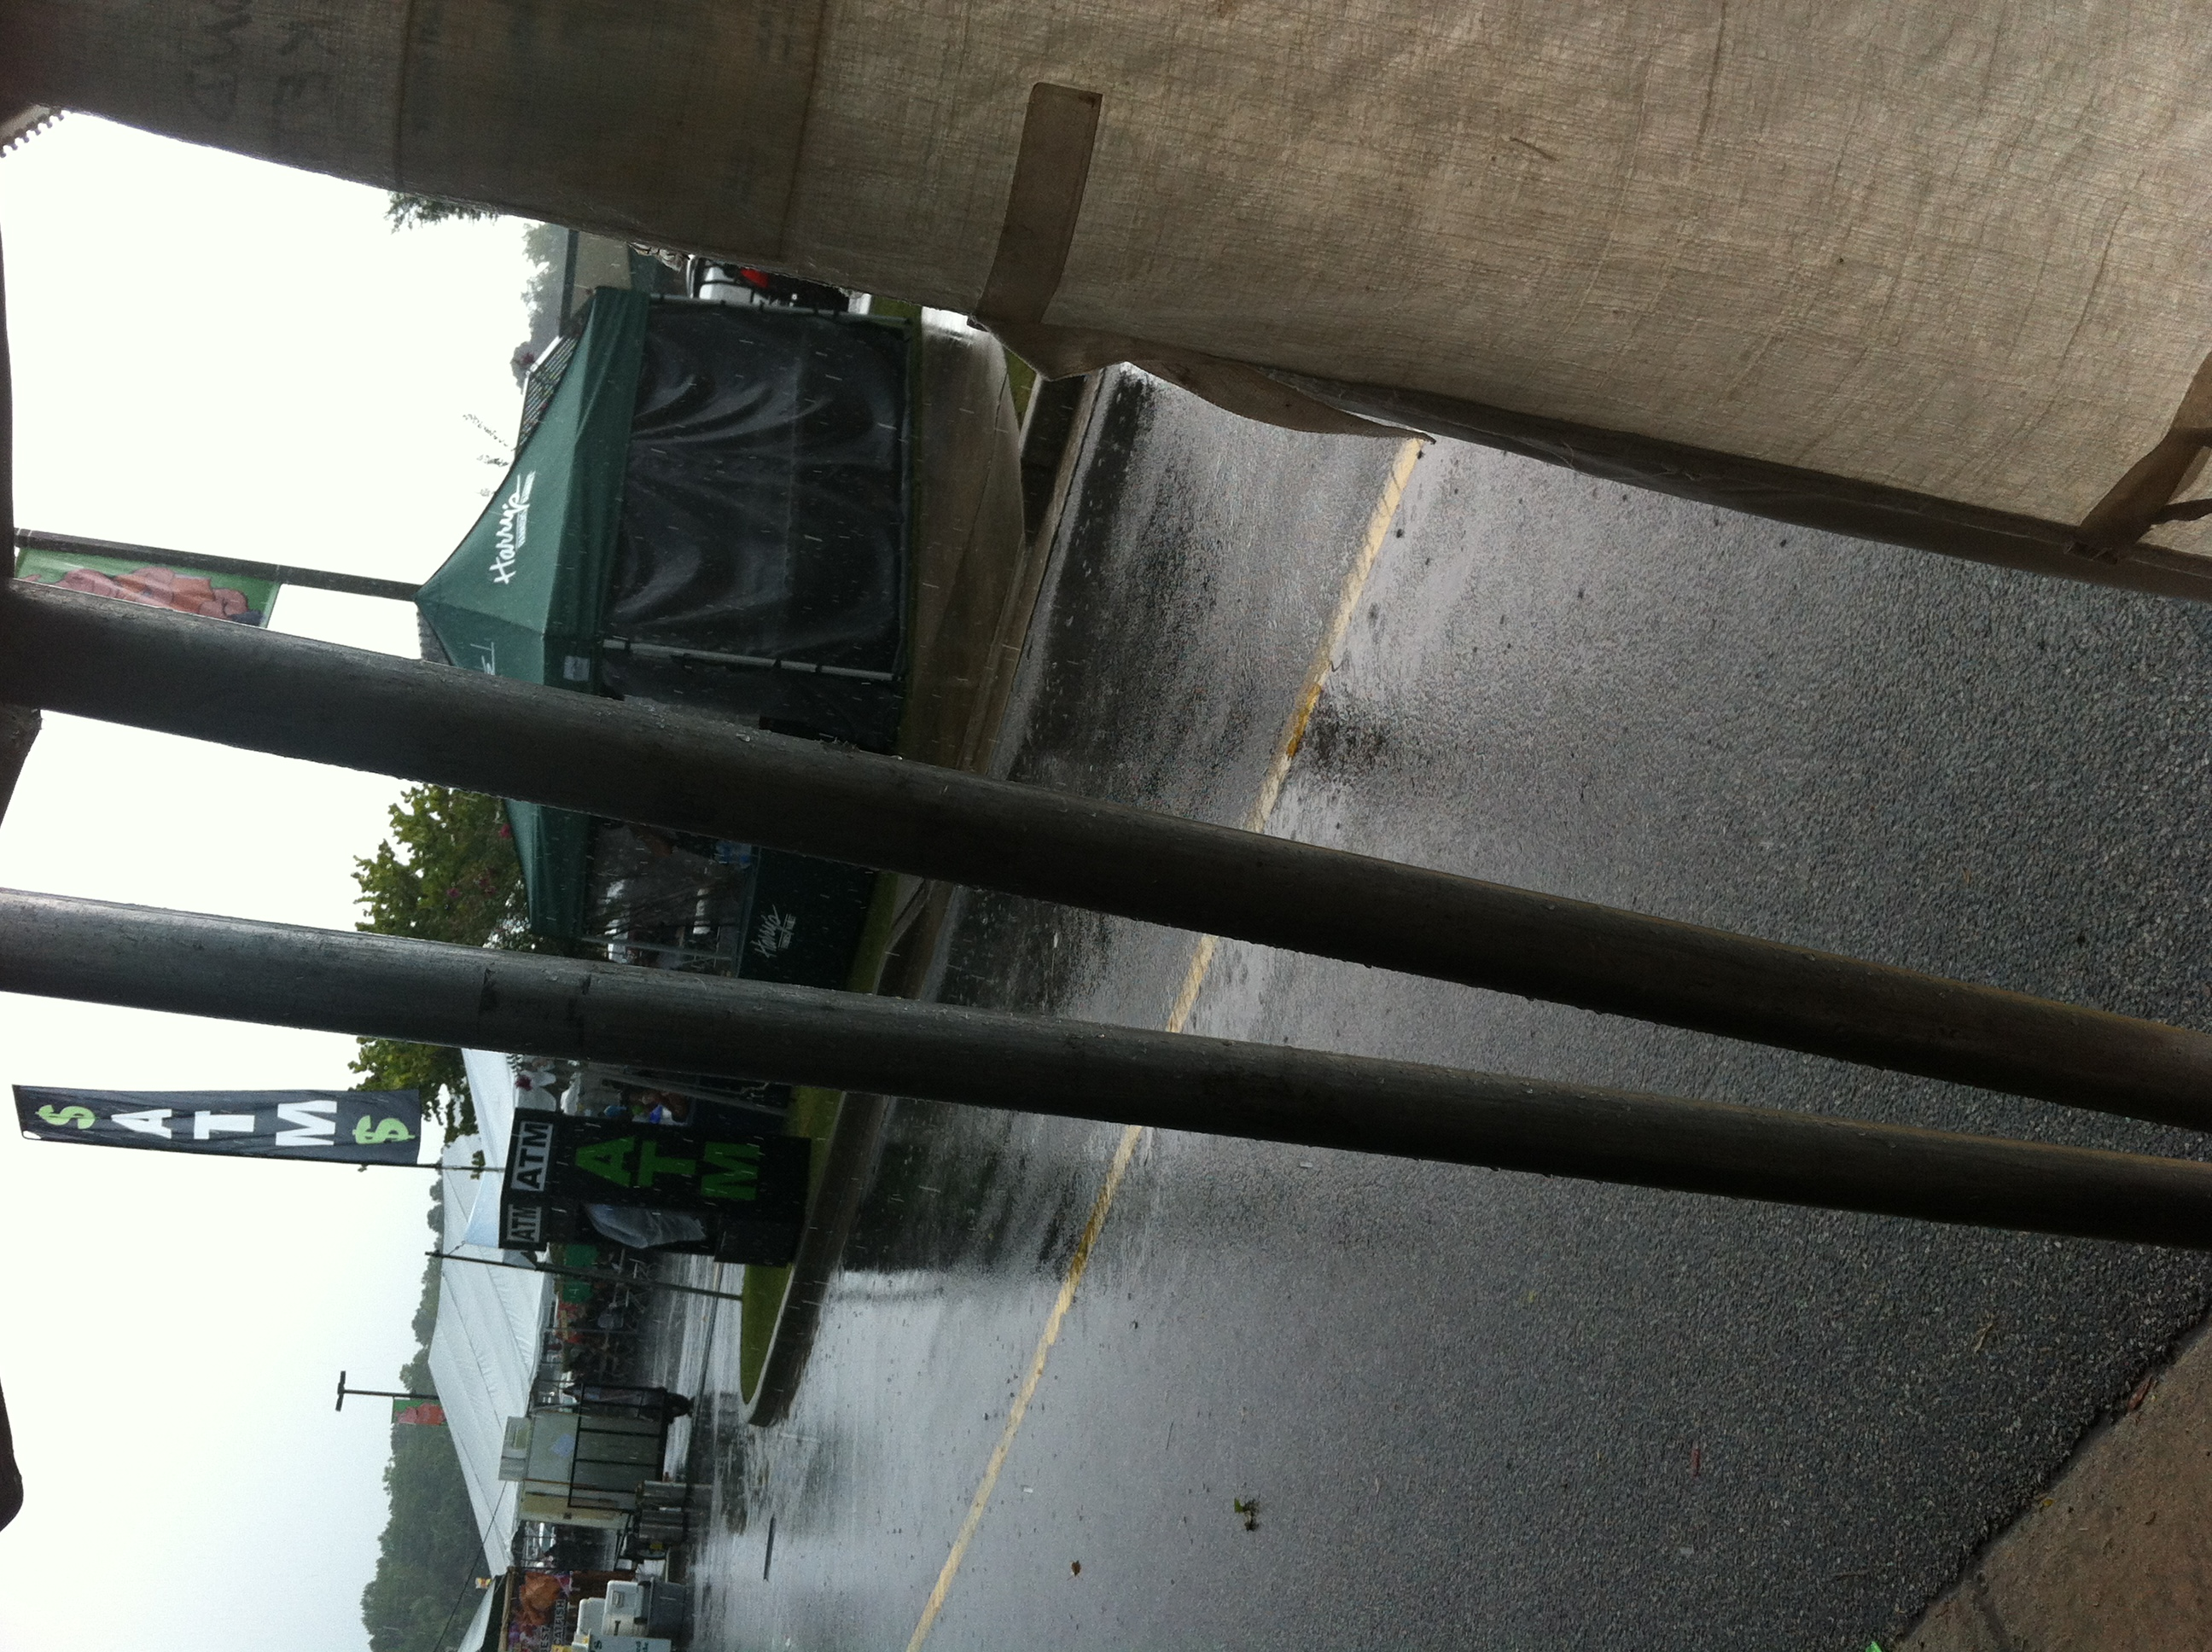 This is a shot from our tent as the rainstorm drives all of the patrons away. Always carry tent sides...you never know!